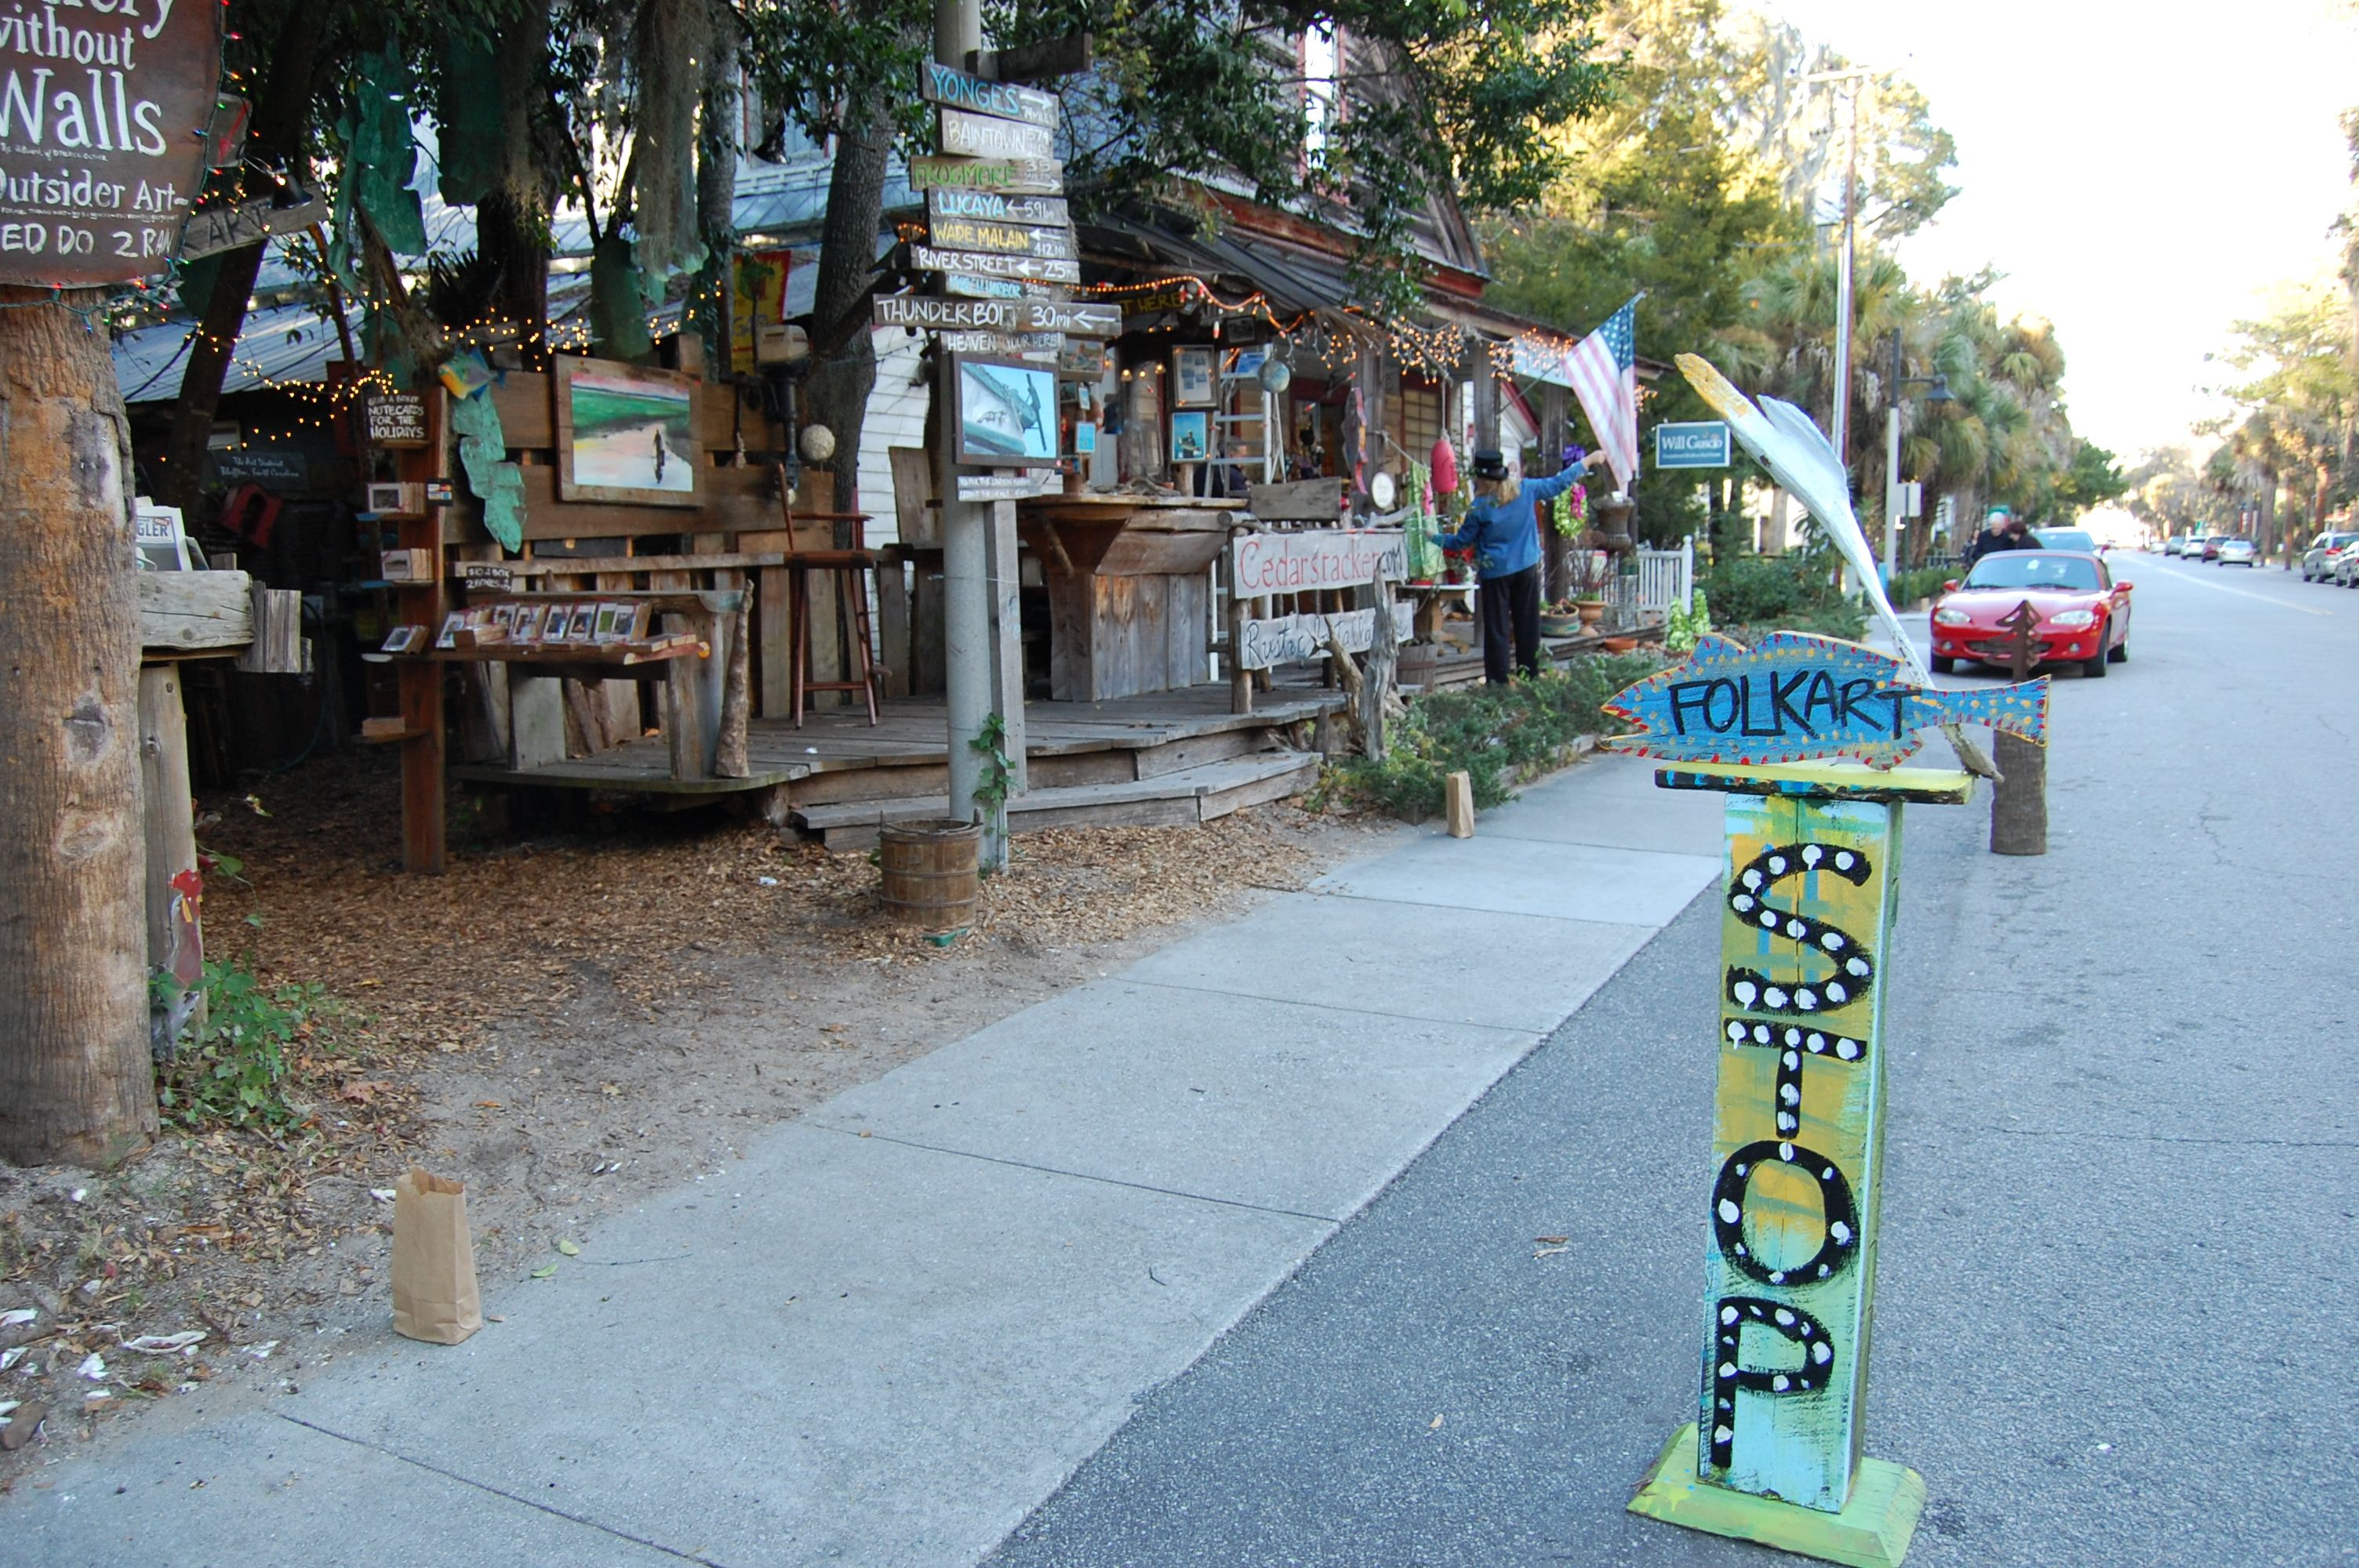 Gallery Without Walls in Bluffton Hilton head island